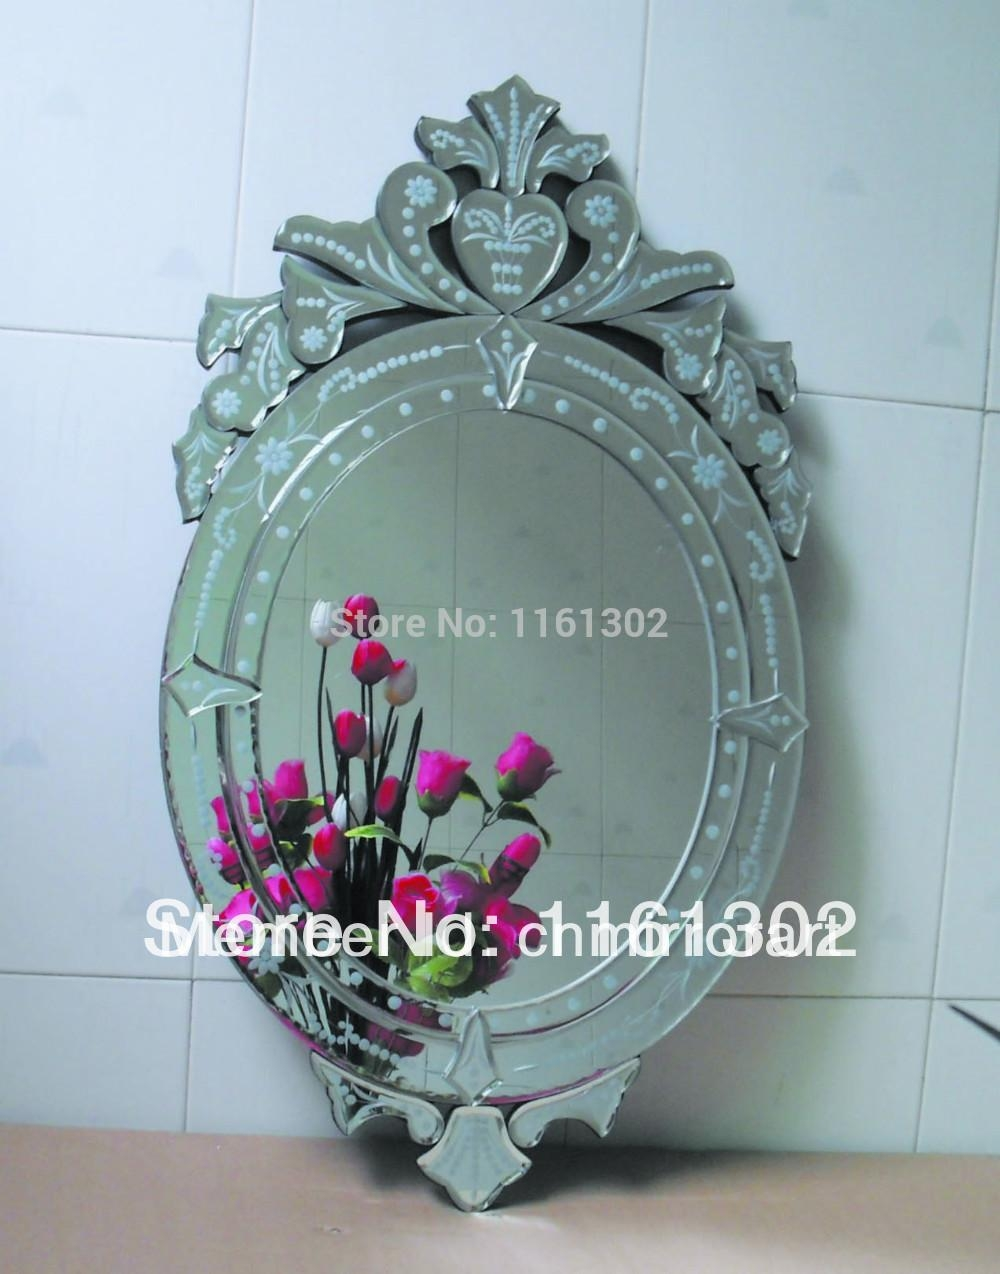 Online Buy Wholesale Venetian Mirrors From China Venetian Mirrors Pertaining To Buy Venetian Mirror (Image 14 of 20)